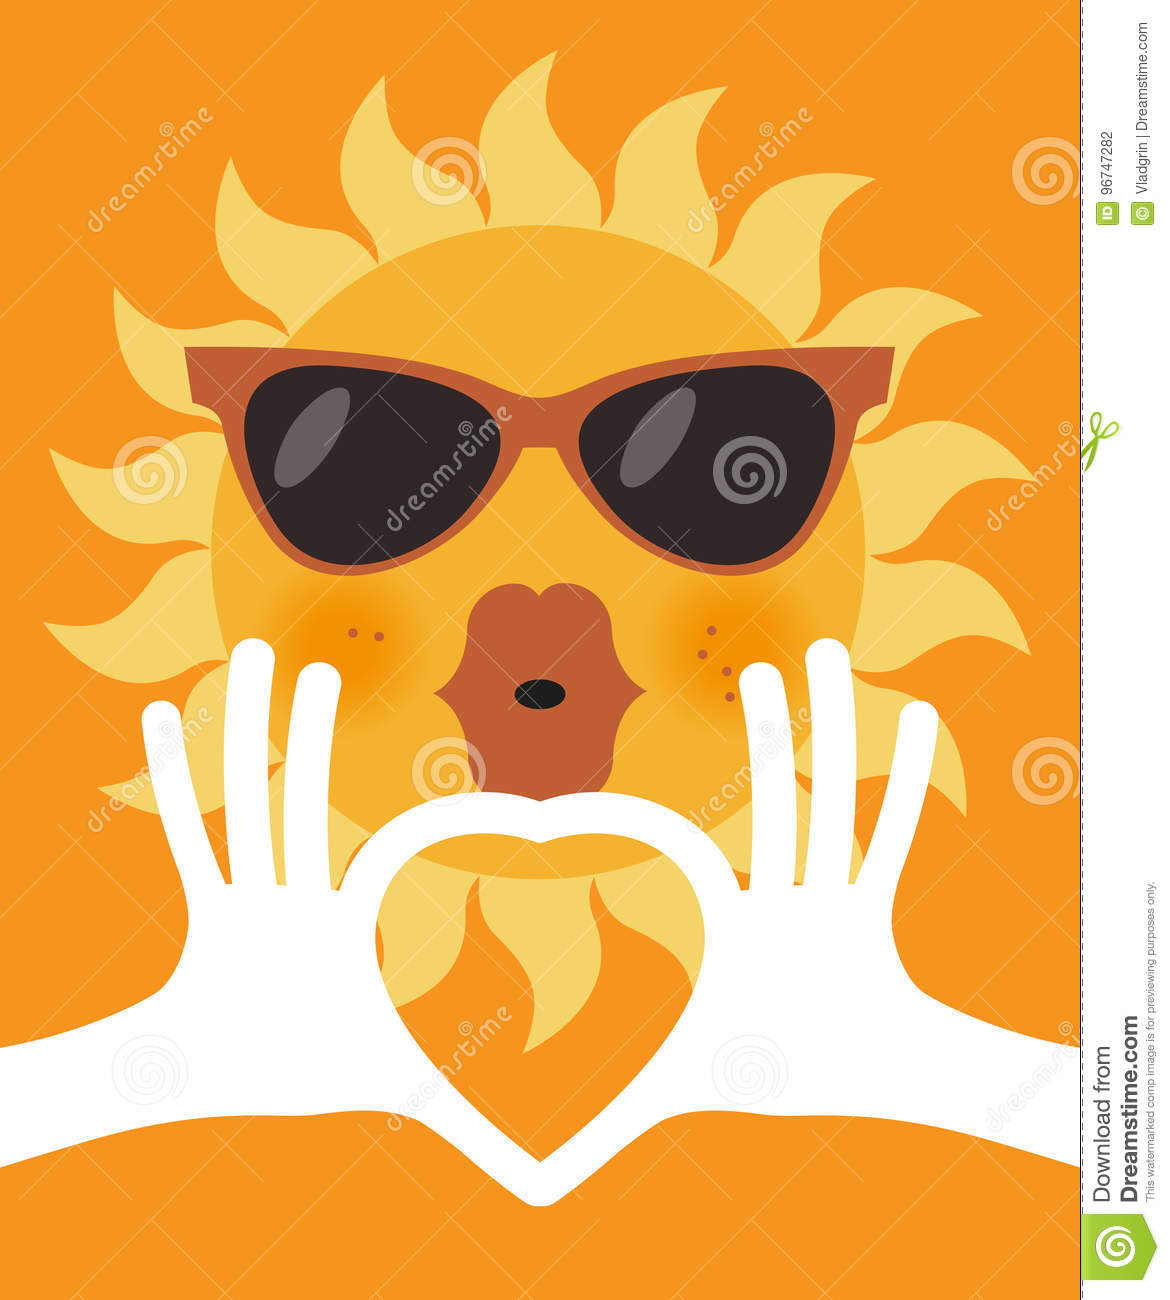 The Shape Of Heart In Human Hands And Cartoon Sun In Glasses